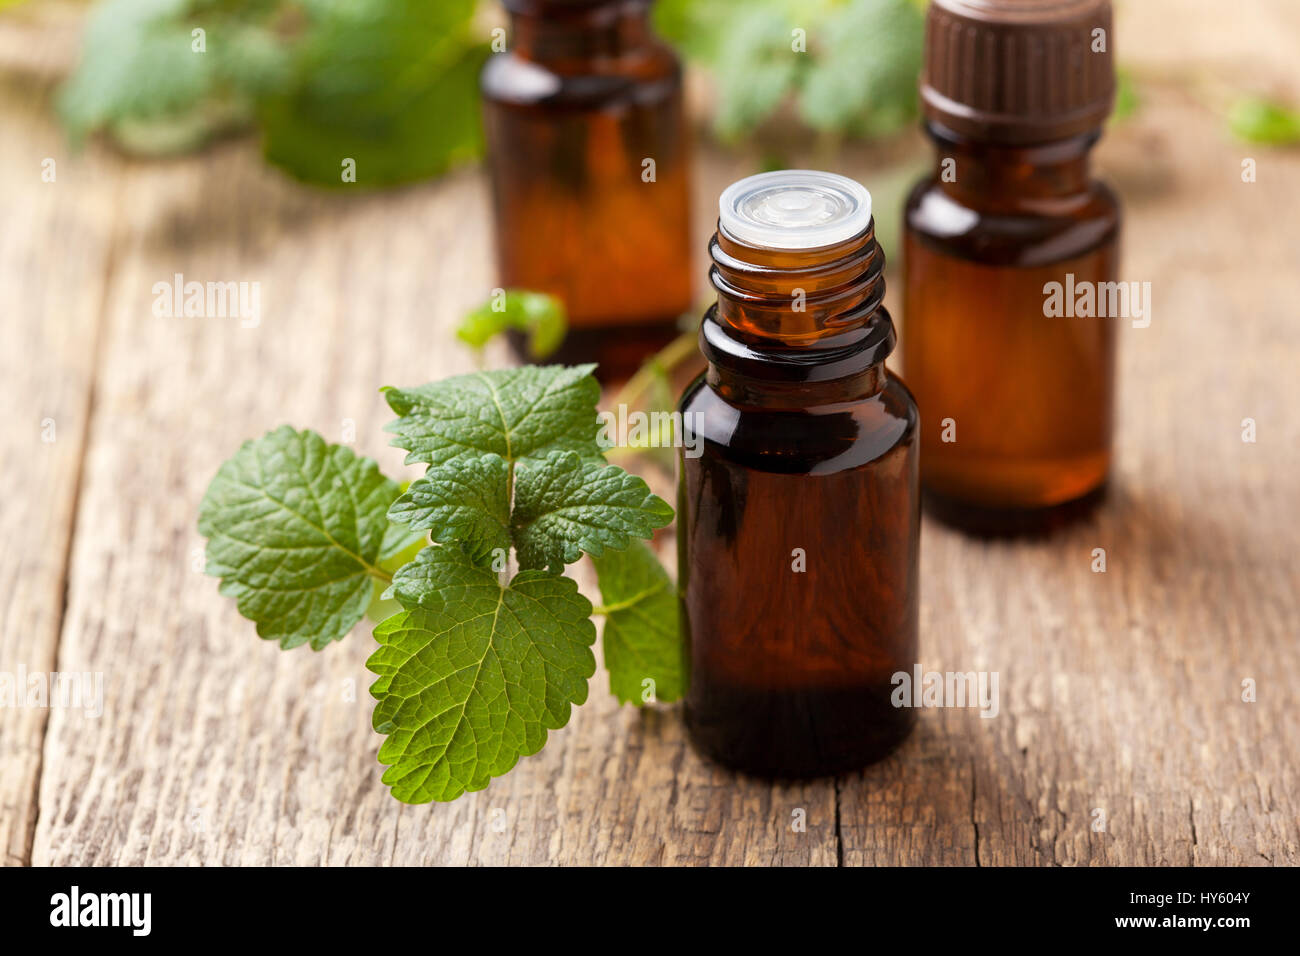 Mint essential oil in a glass bottle, sprigs of fresh mint on an old wooden background - Stock Image